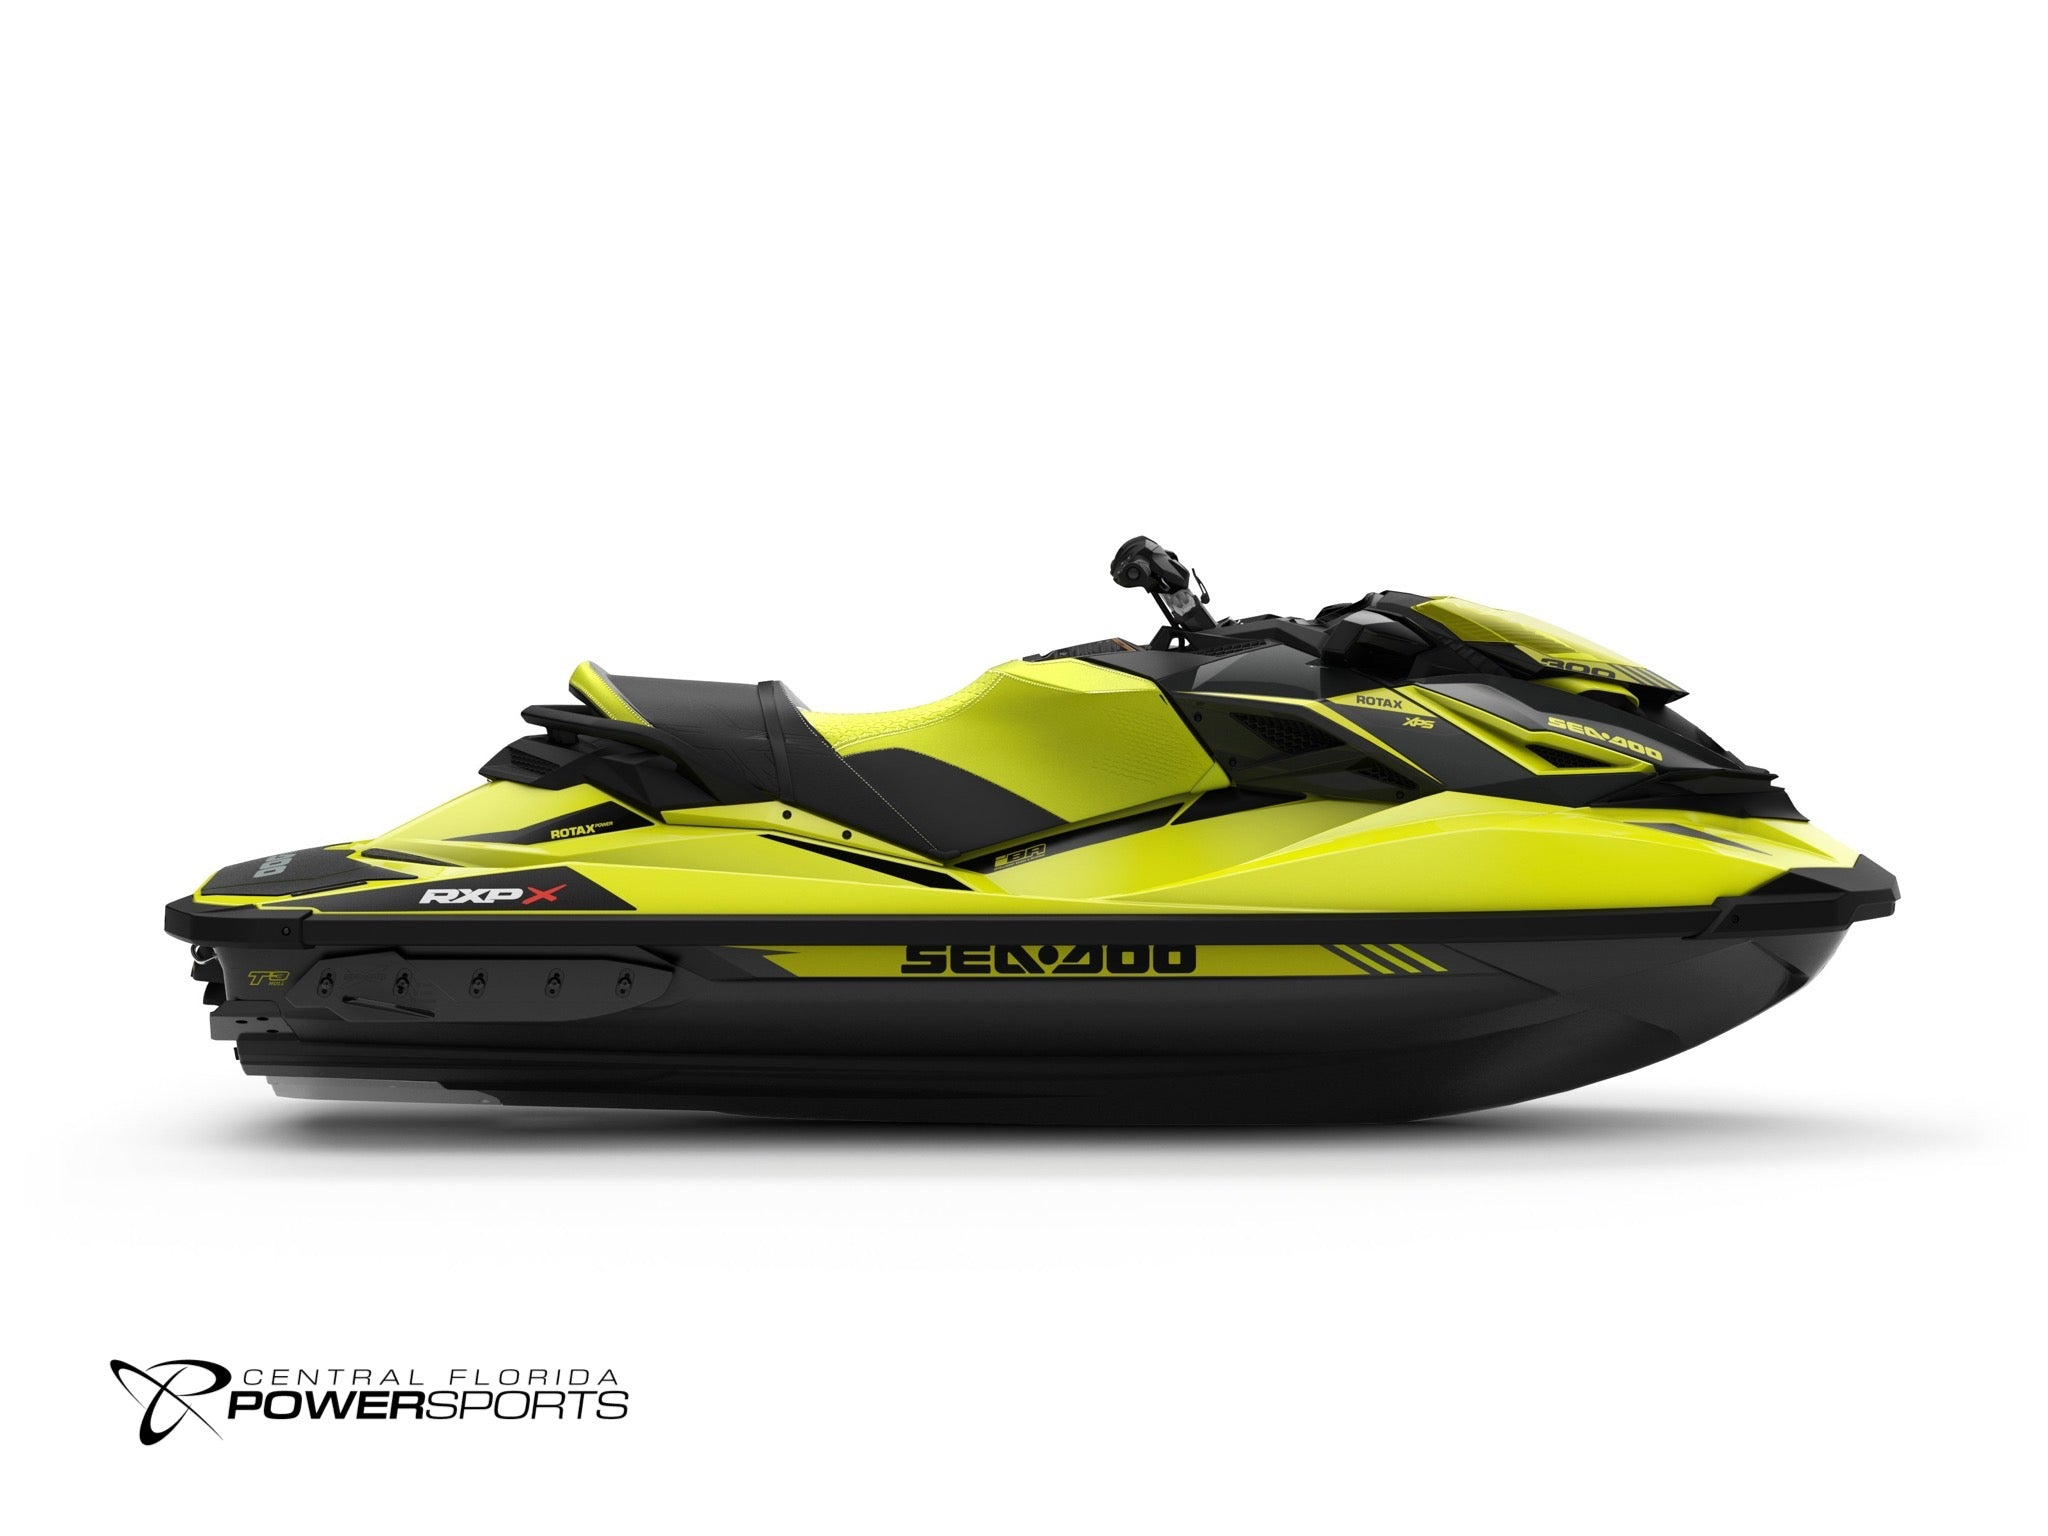 Seadoo Prices >> Lowest Prices on 2018 Sea-Doo RXP-X 300 Racing PWC For Sale Kissimmee - Central Florida PowerSports